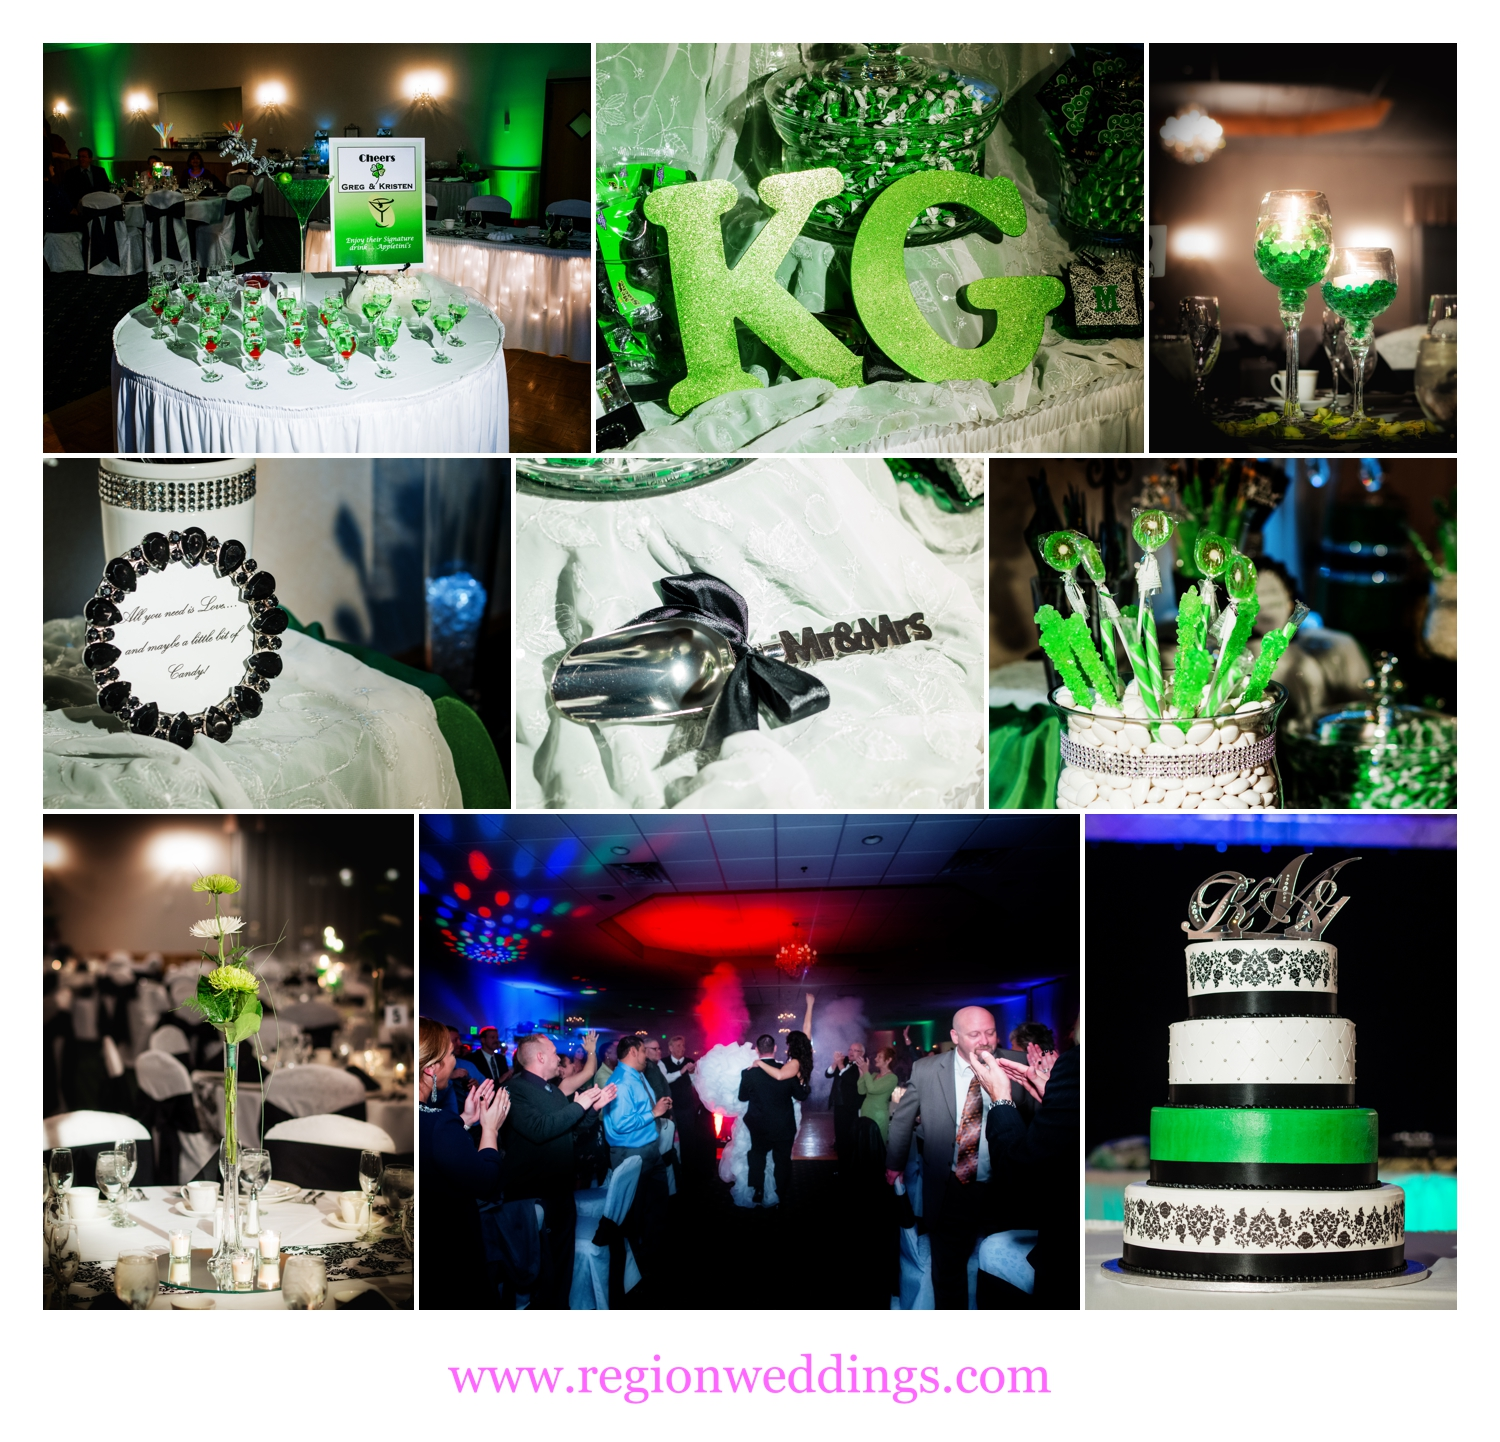 Green decorations to match the cake as the bride and groom enter the ballroom at The Patrician.